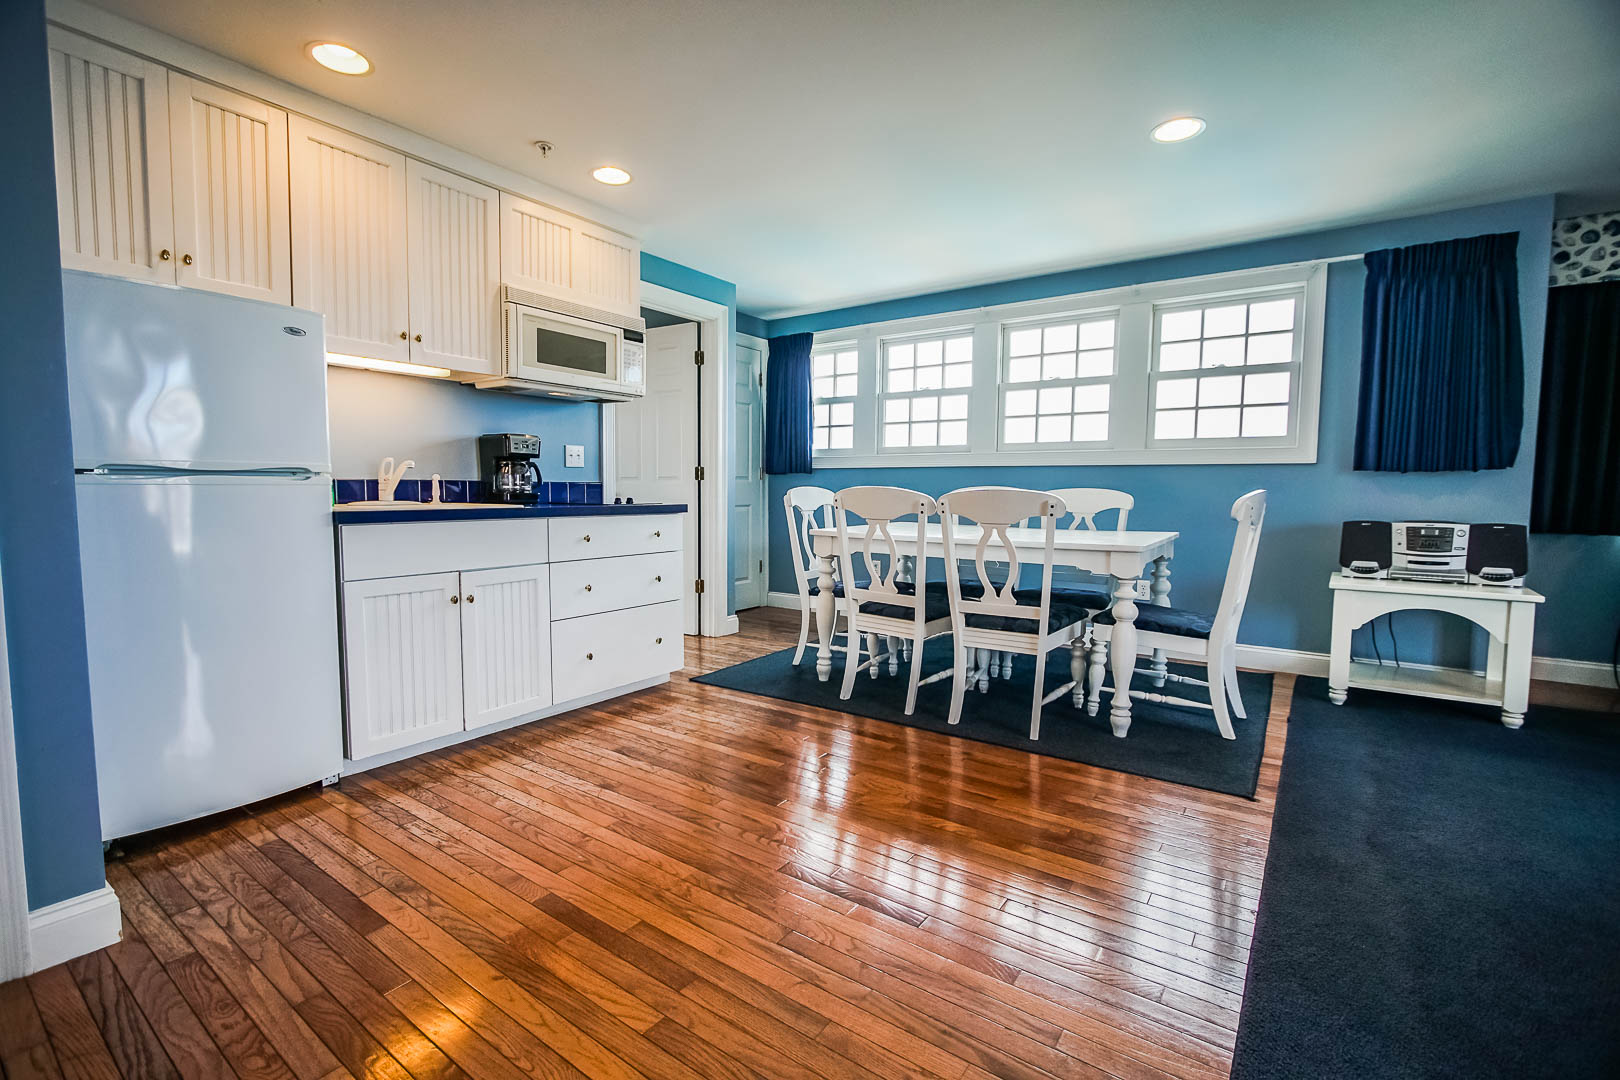 A spacious full kitchen at VRI's Beachside Village Resort in Massachusetts.